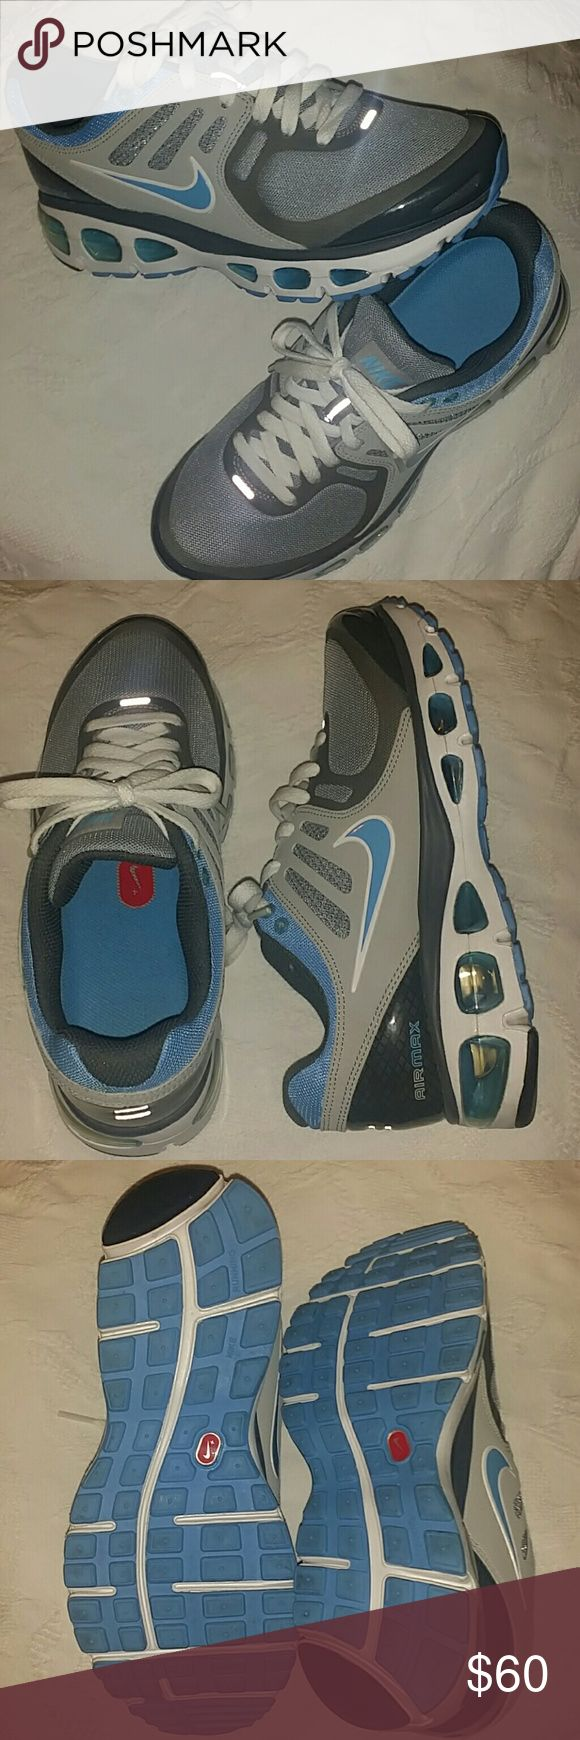 Nike Air Max Tailwind 2 Nike Air Max Tailwind 2 athletic shoes. New, never worn Nike Shoes Athletic Shoes